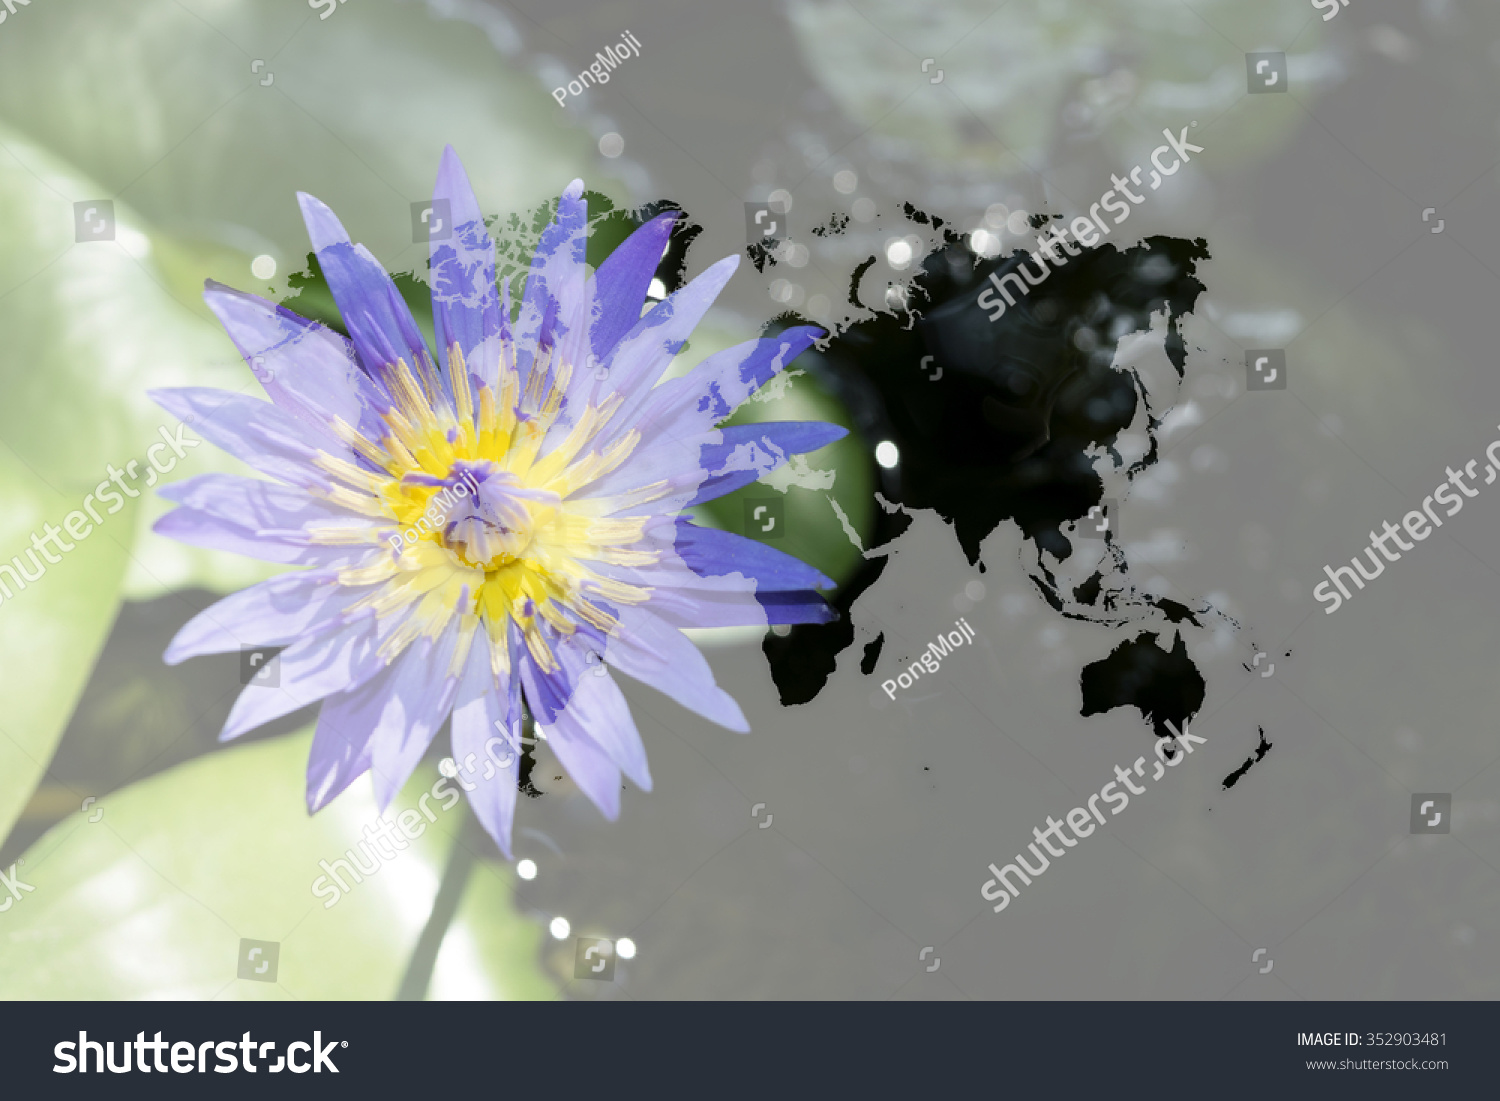 Beautiful lotus flower naturally beautiful flowers stock photo beautiful lotus flower naturally beautiful flowers in the garden with world map outline elements izmirmasajfo